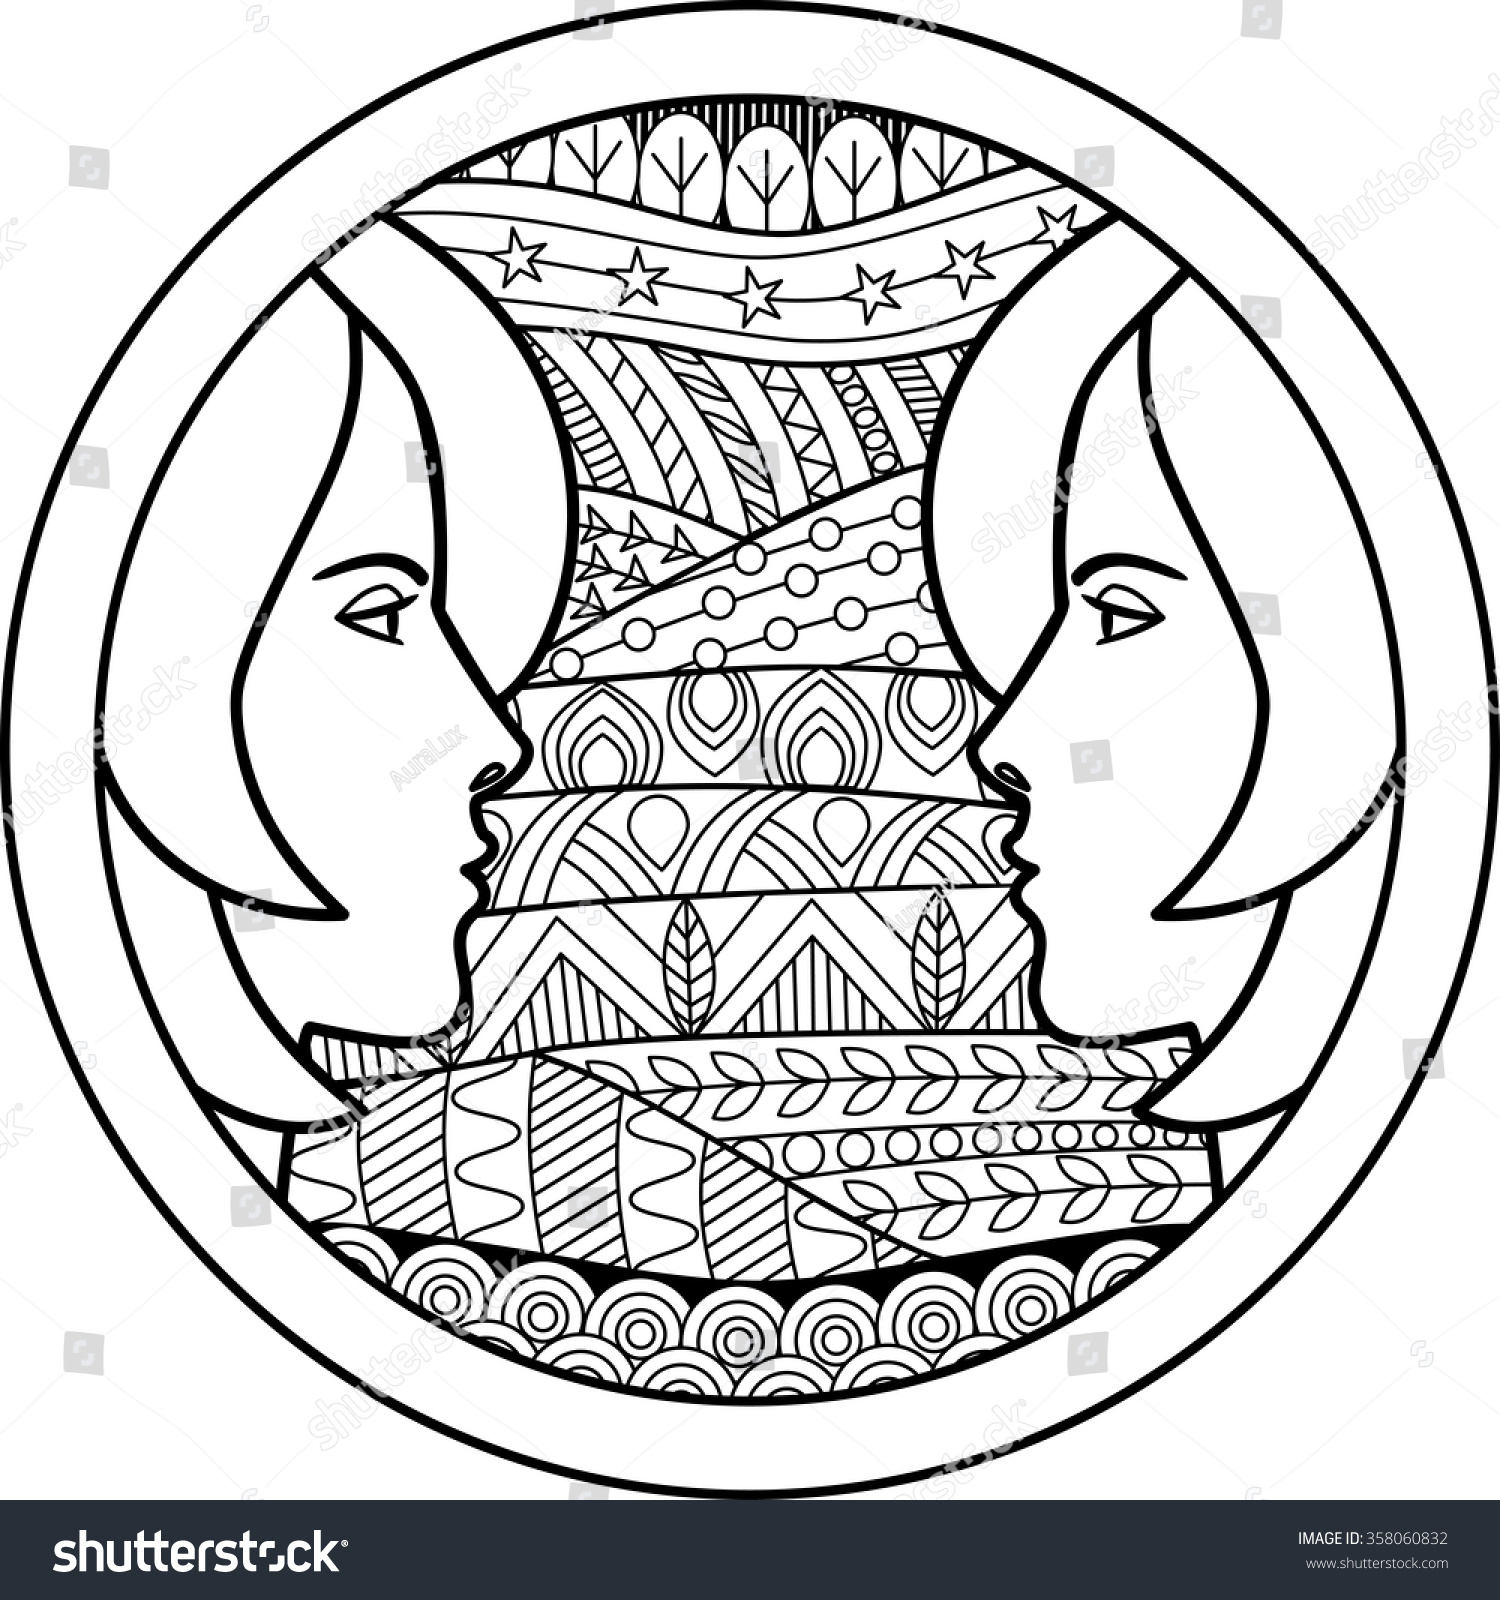 Zodiac sign gemini vector illustration abstract stock for Gemini coloring pages